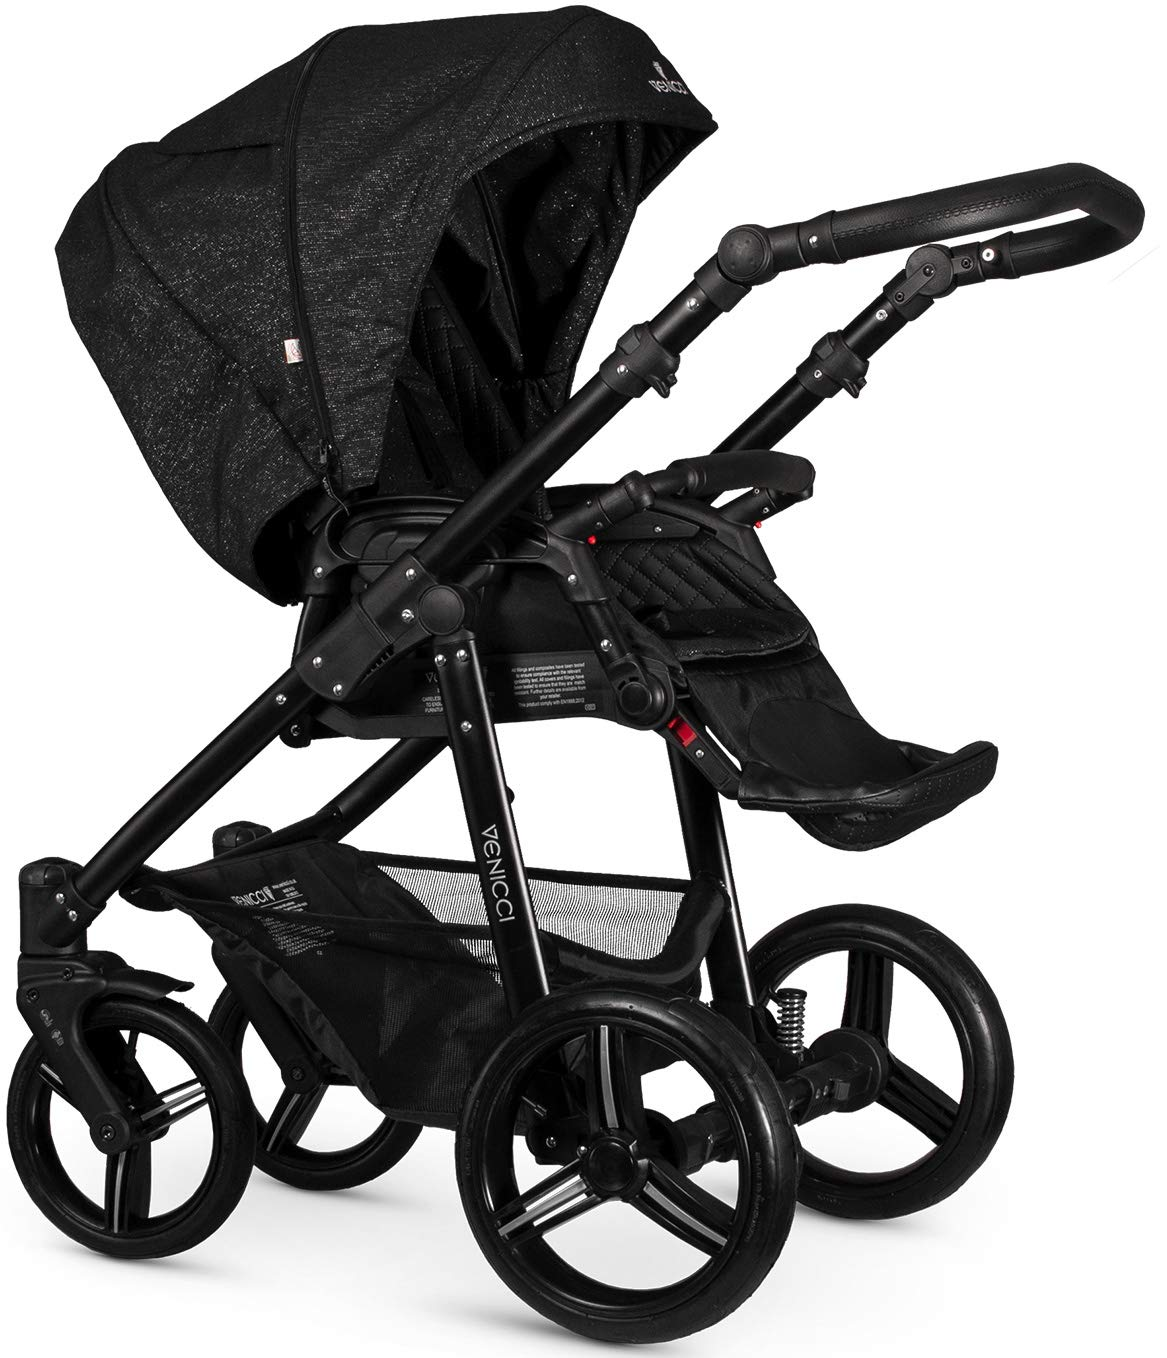 Venicci Shadow 2-in-1 - Starlight Travel System Venicci Also includes: Changing bag, Apron, Rain cover, Mosquito net, Cup holder Carrycot: L 102cm W 61cm H 112 cm Age suitability: From birth to 6 months Seat unit: L 95cm W 61cm H 112cm Age suitability: From 7 to 36 months 2